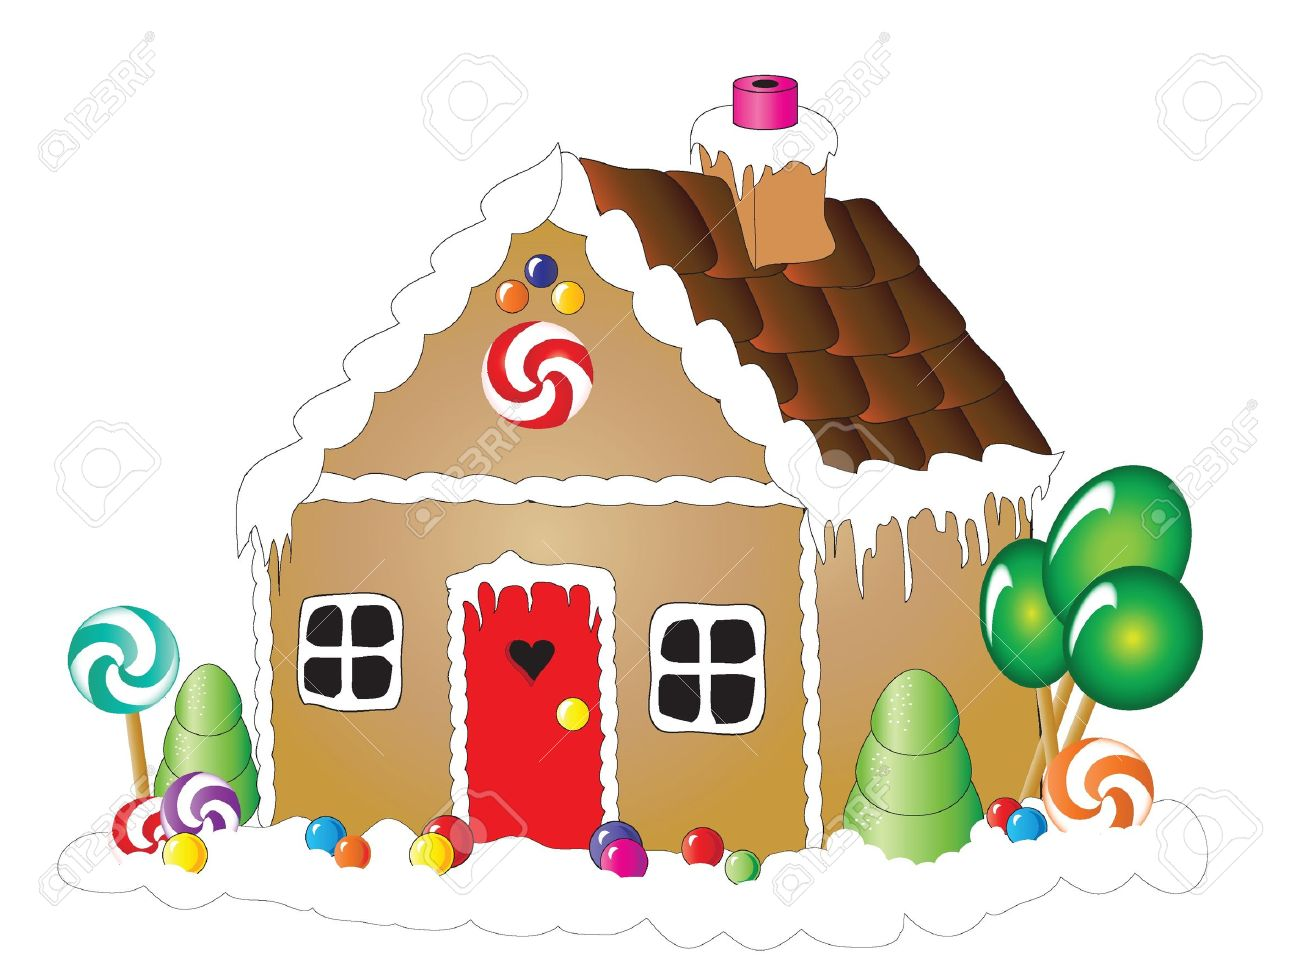 Vector illustration of a gingerbread house against white background Stock Vector - 10837575